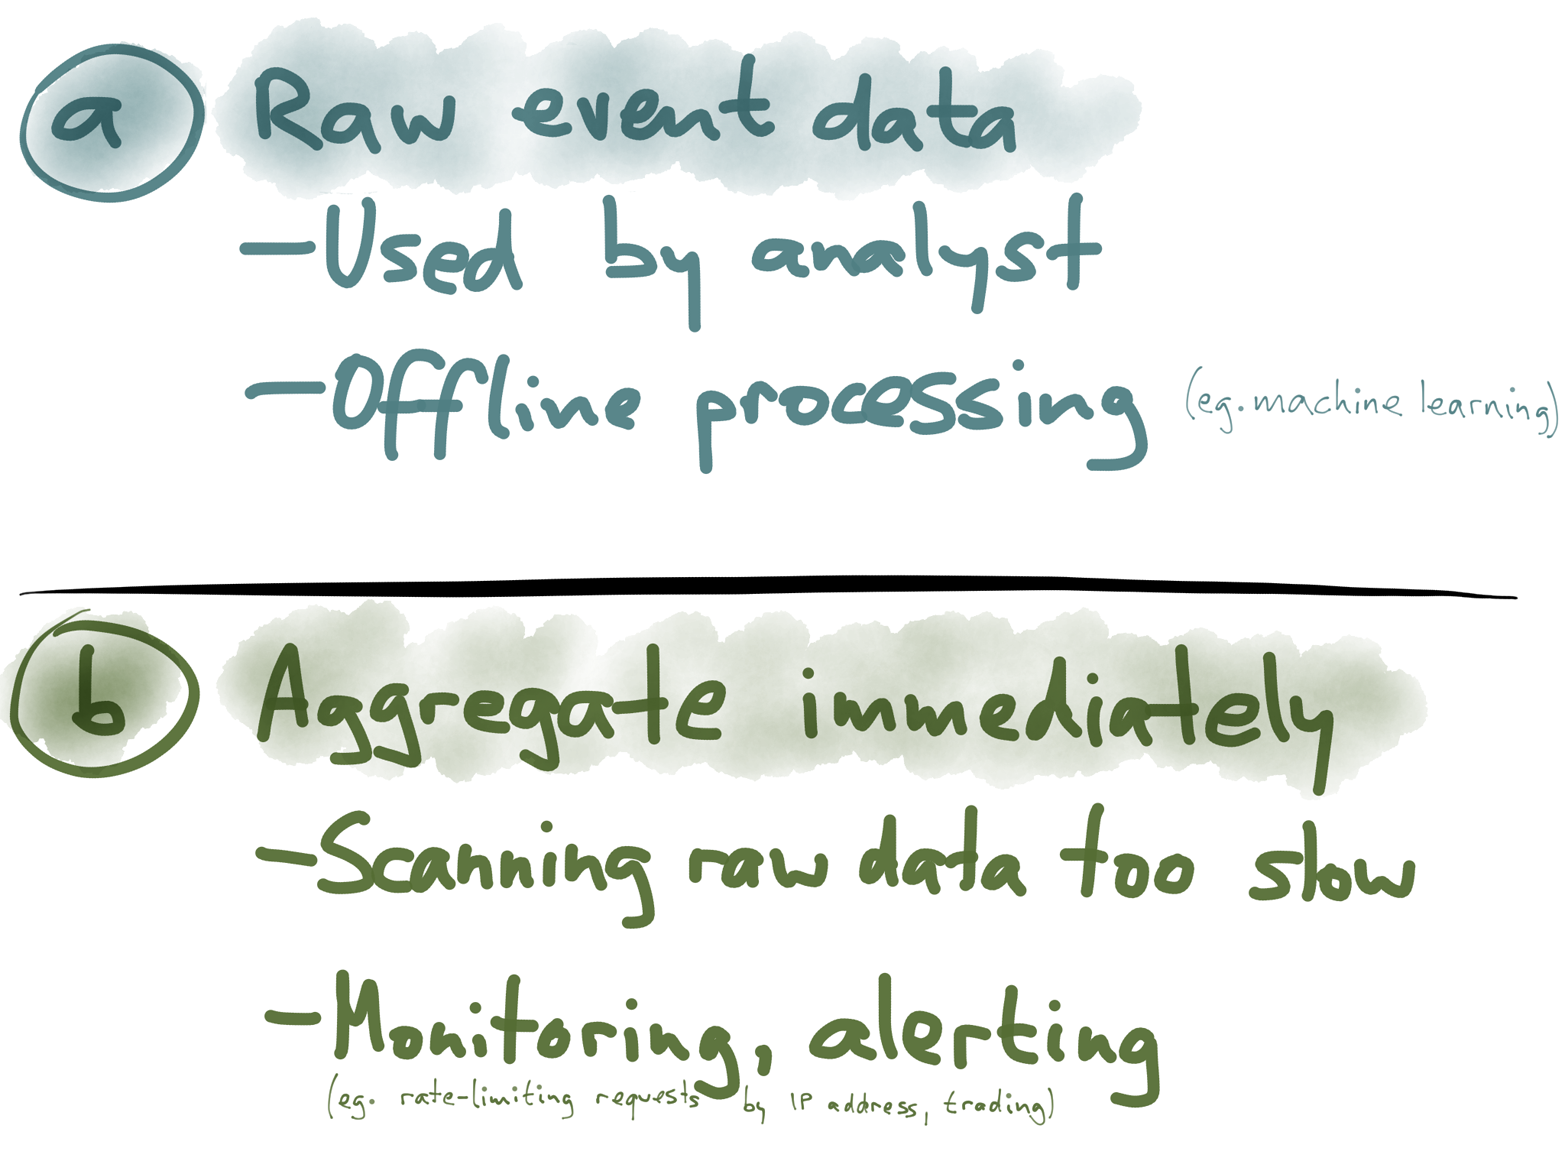 Storing raw event data versus aggregating immediately.